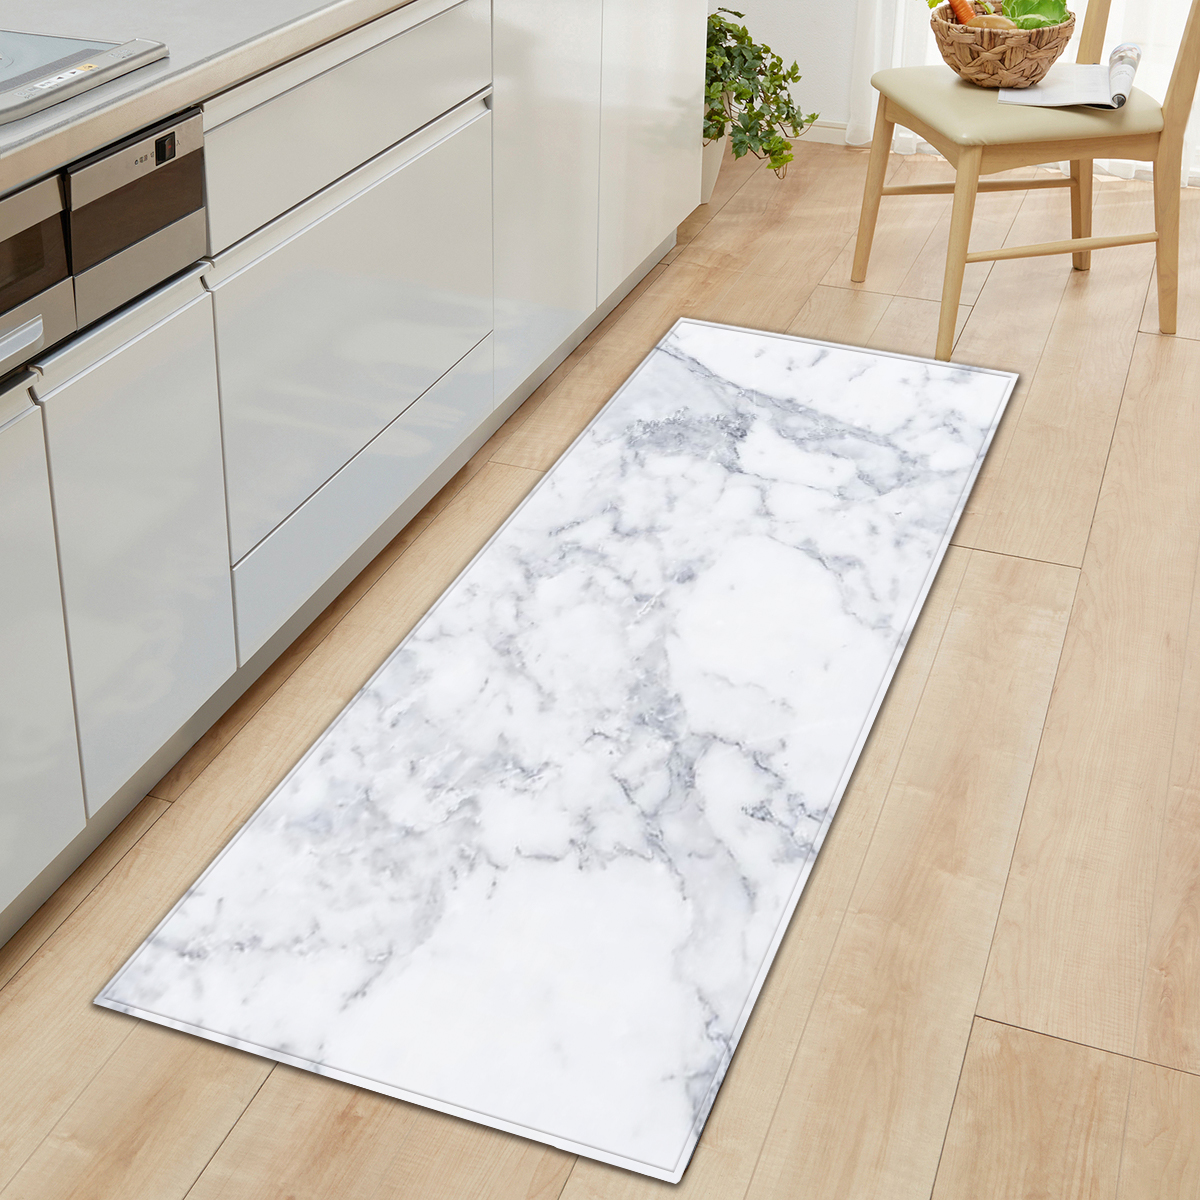 Marble Pattern Printed Floor Mat Kitchen Non Slip Floor Mats For Living  Rooms Door Mats Entrance Decor Rug Carpet Flooring Over Carpet Shaw Carpet  ...